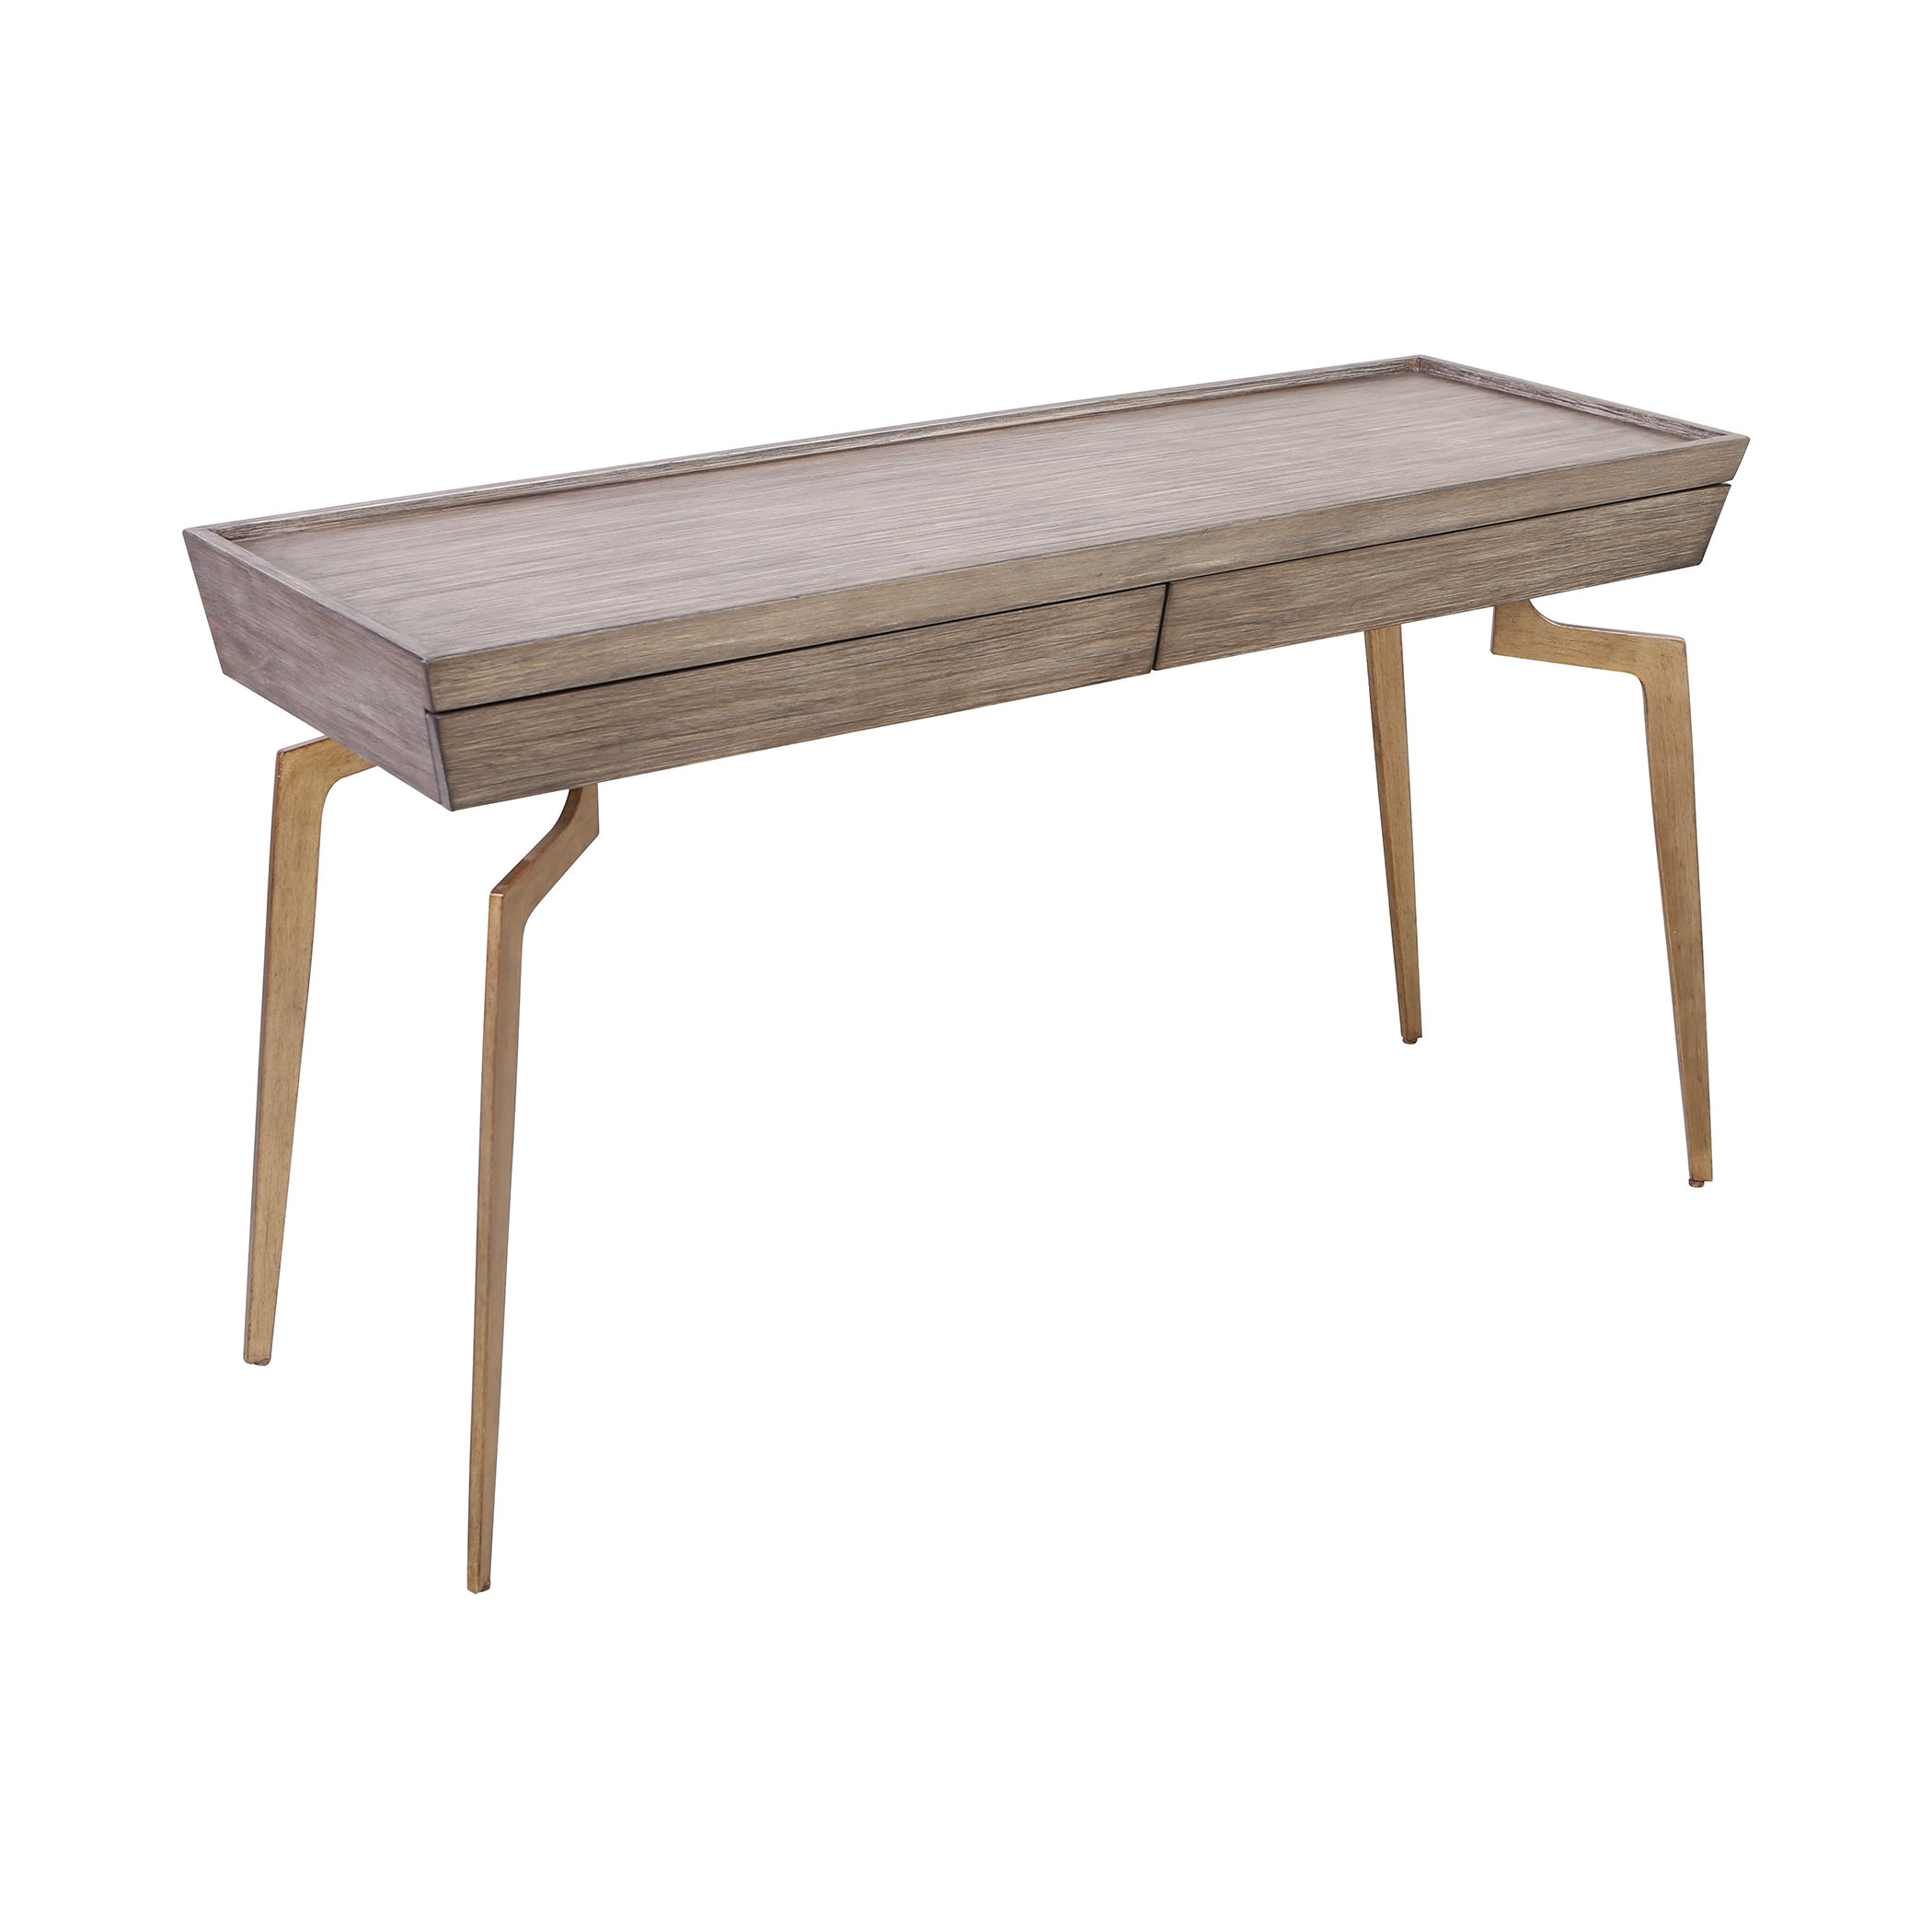 Larocca Console Table in Soft Gold and Grey Birch Veneer | Elk Home